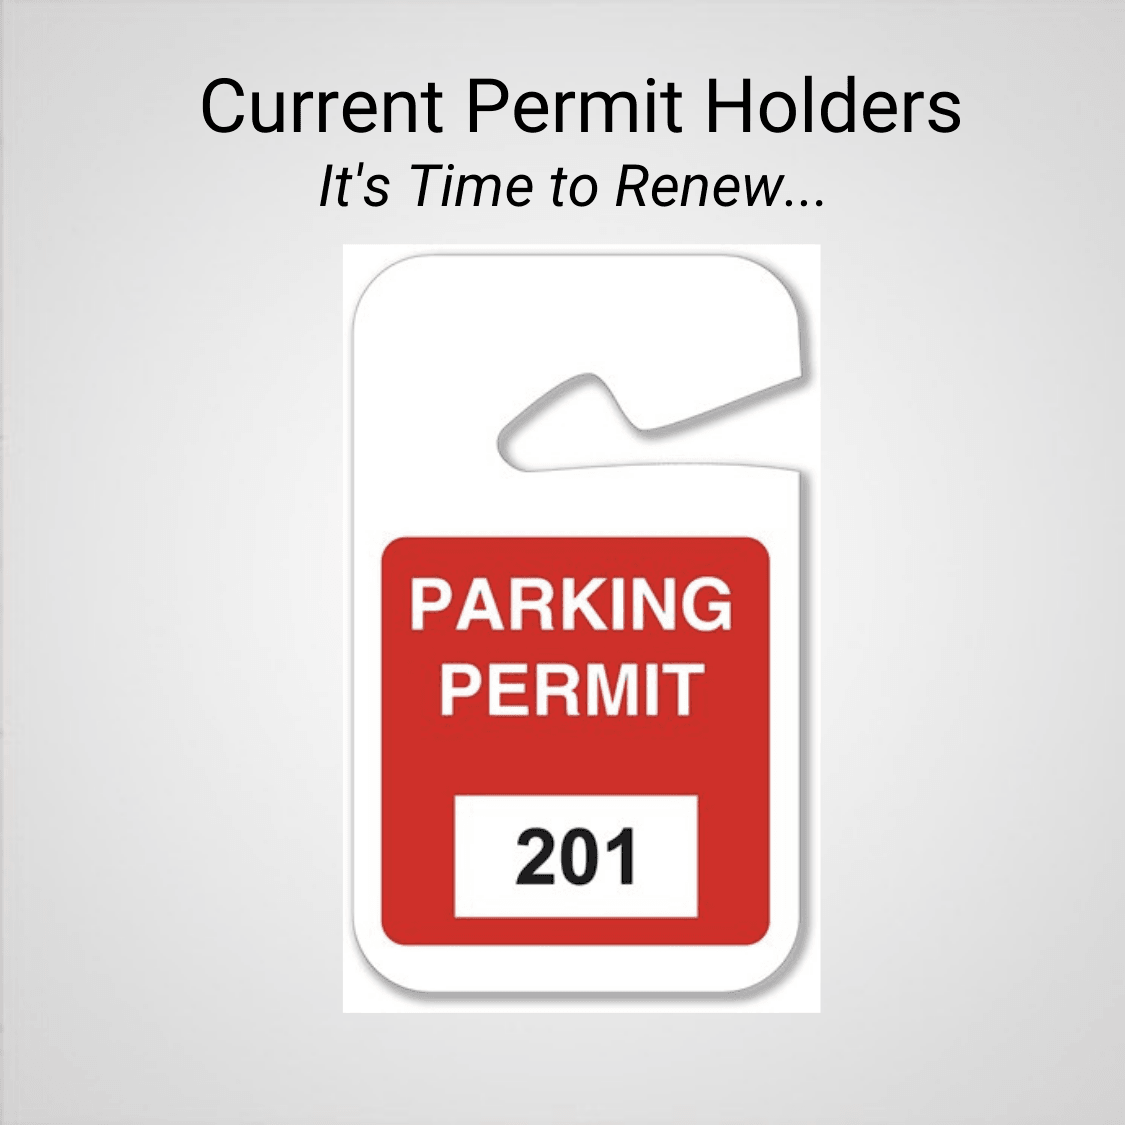 Parking Permit Renewals